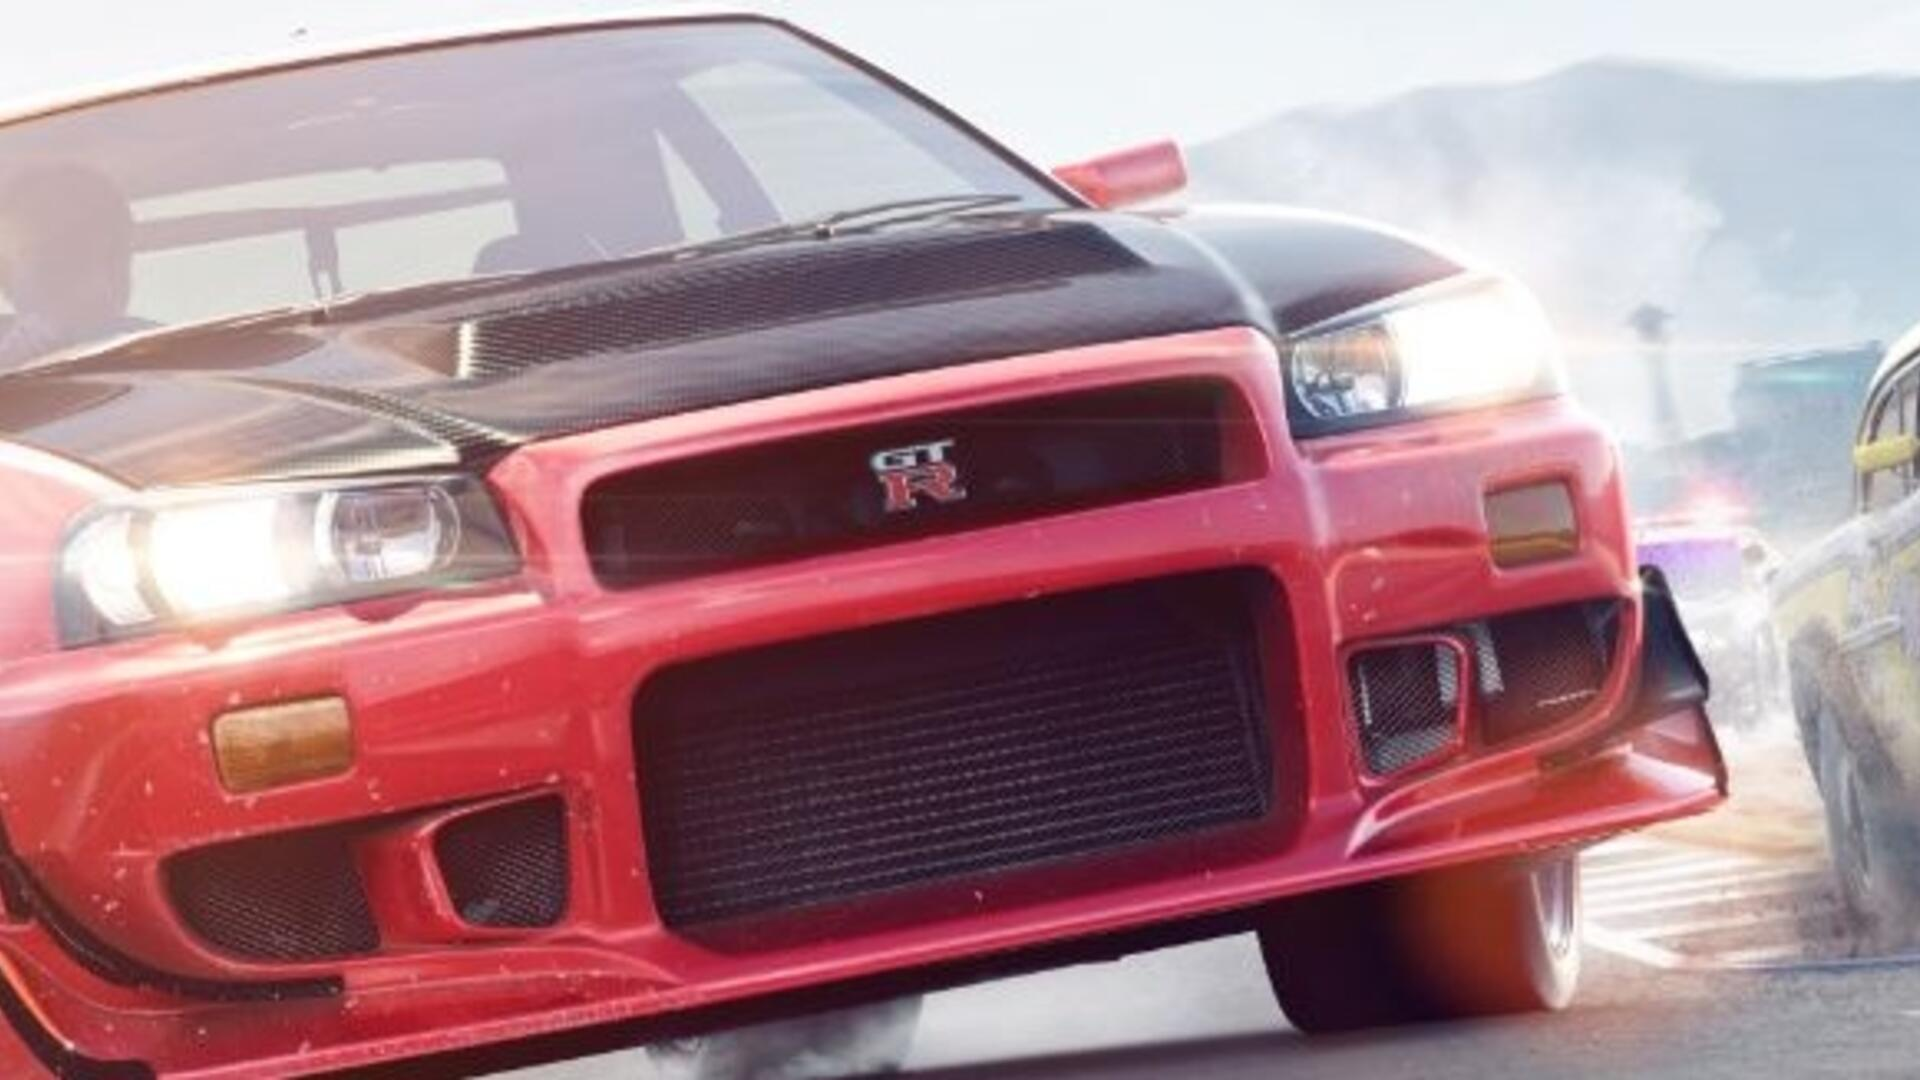 Need for Speed Payback - Release Date, (Update: E3 2017 Gameplay), Pre-Order Bonuses, City, Customization, Trailer - Everything we Know